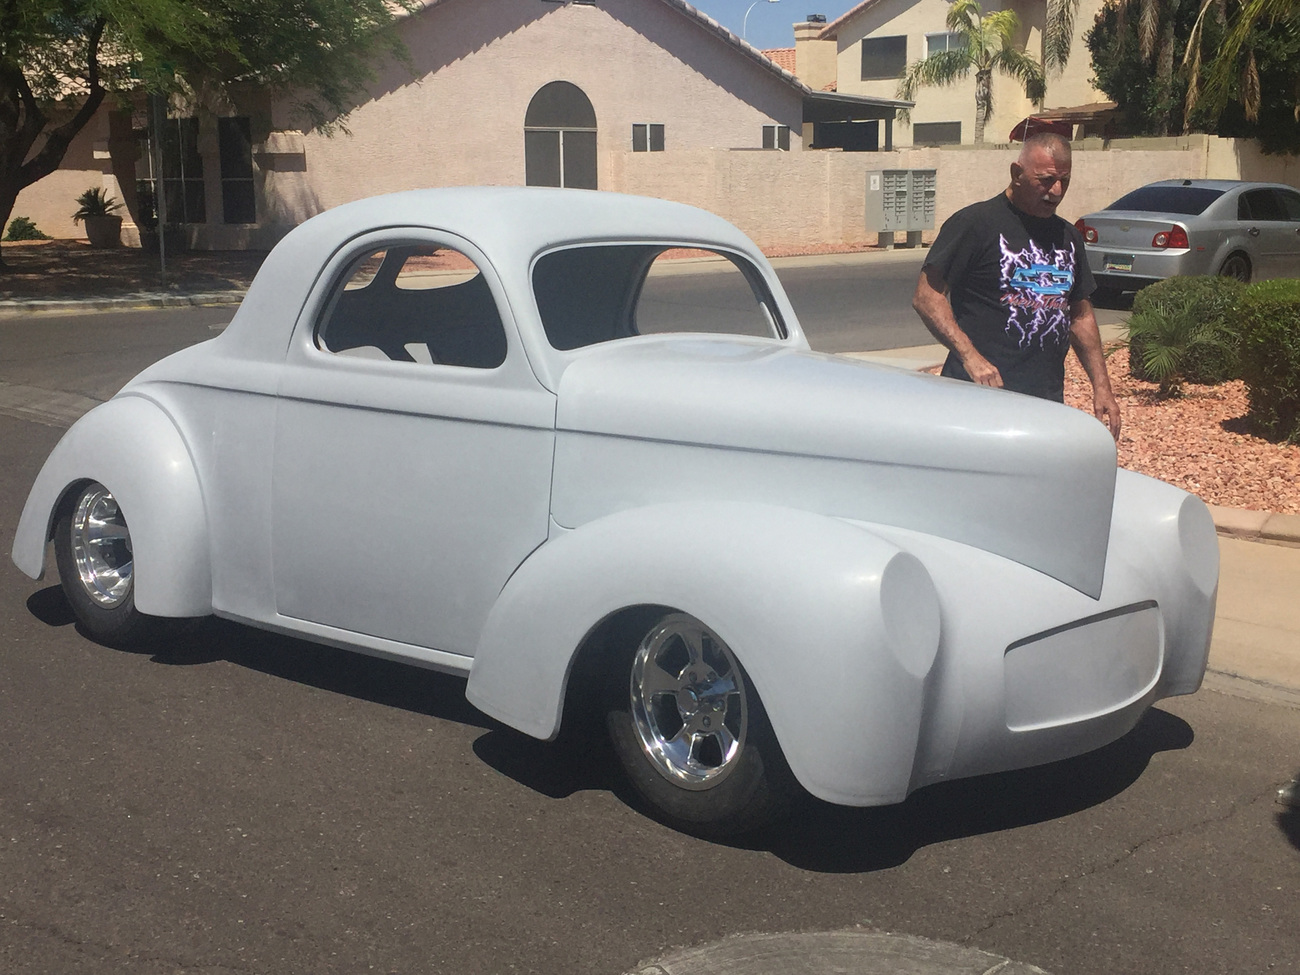 1941 Willy's Coupe by junge1